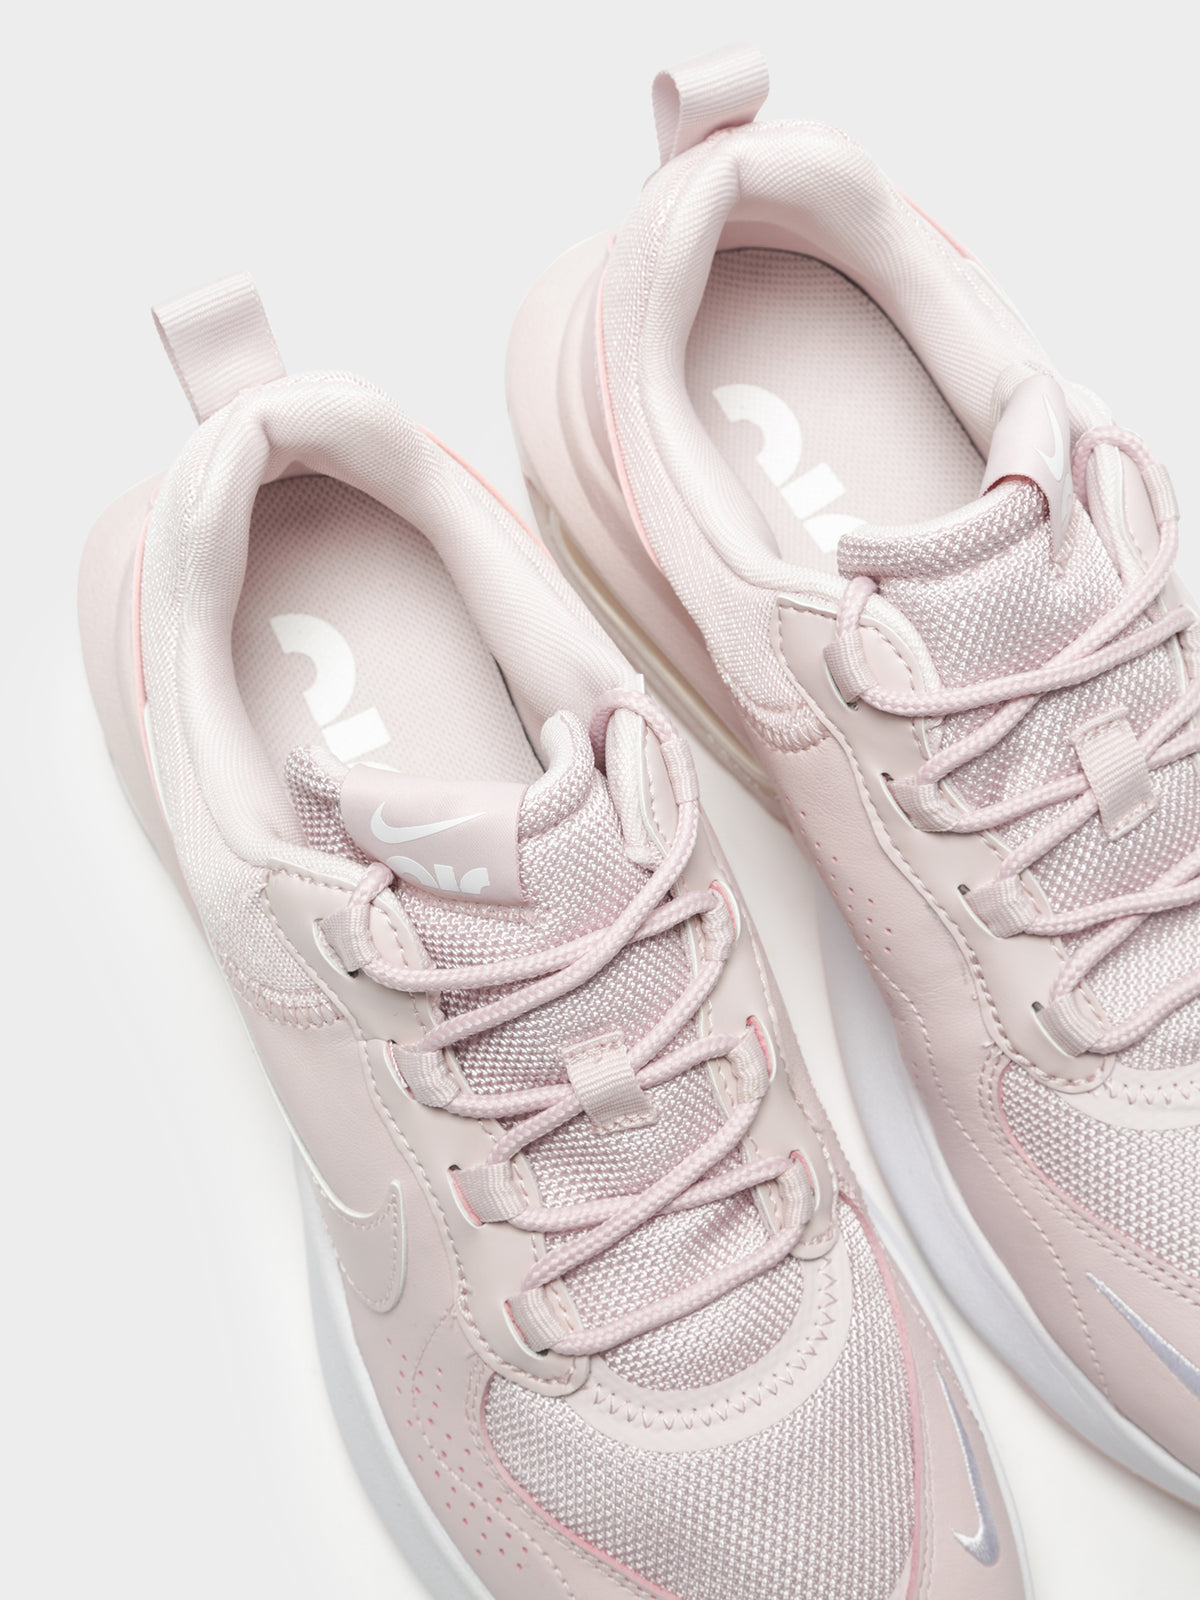 Air Max Verona Sneakers in Barley Rose